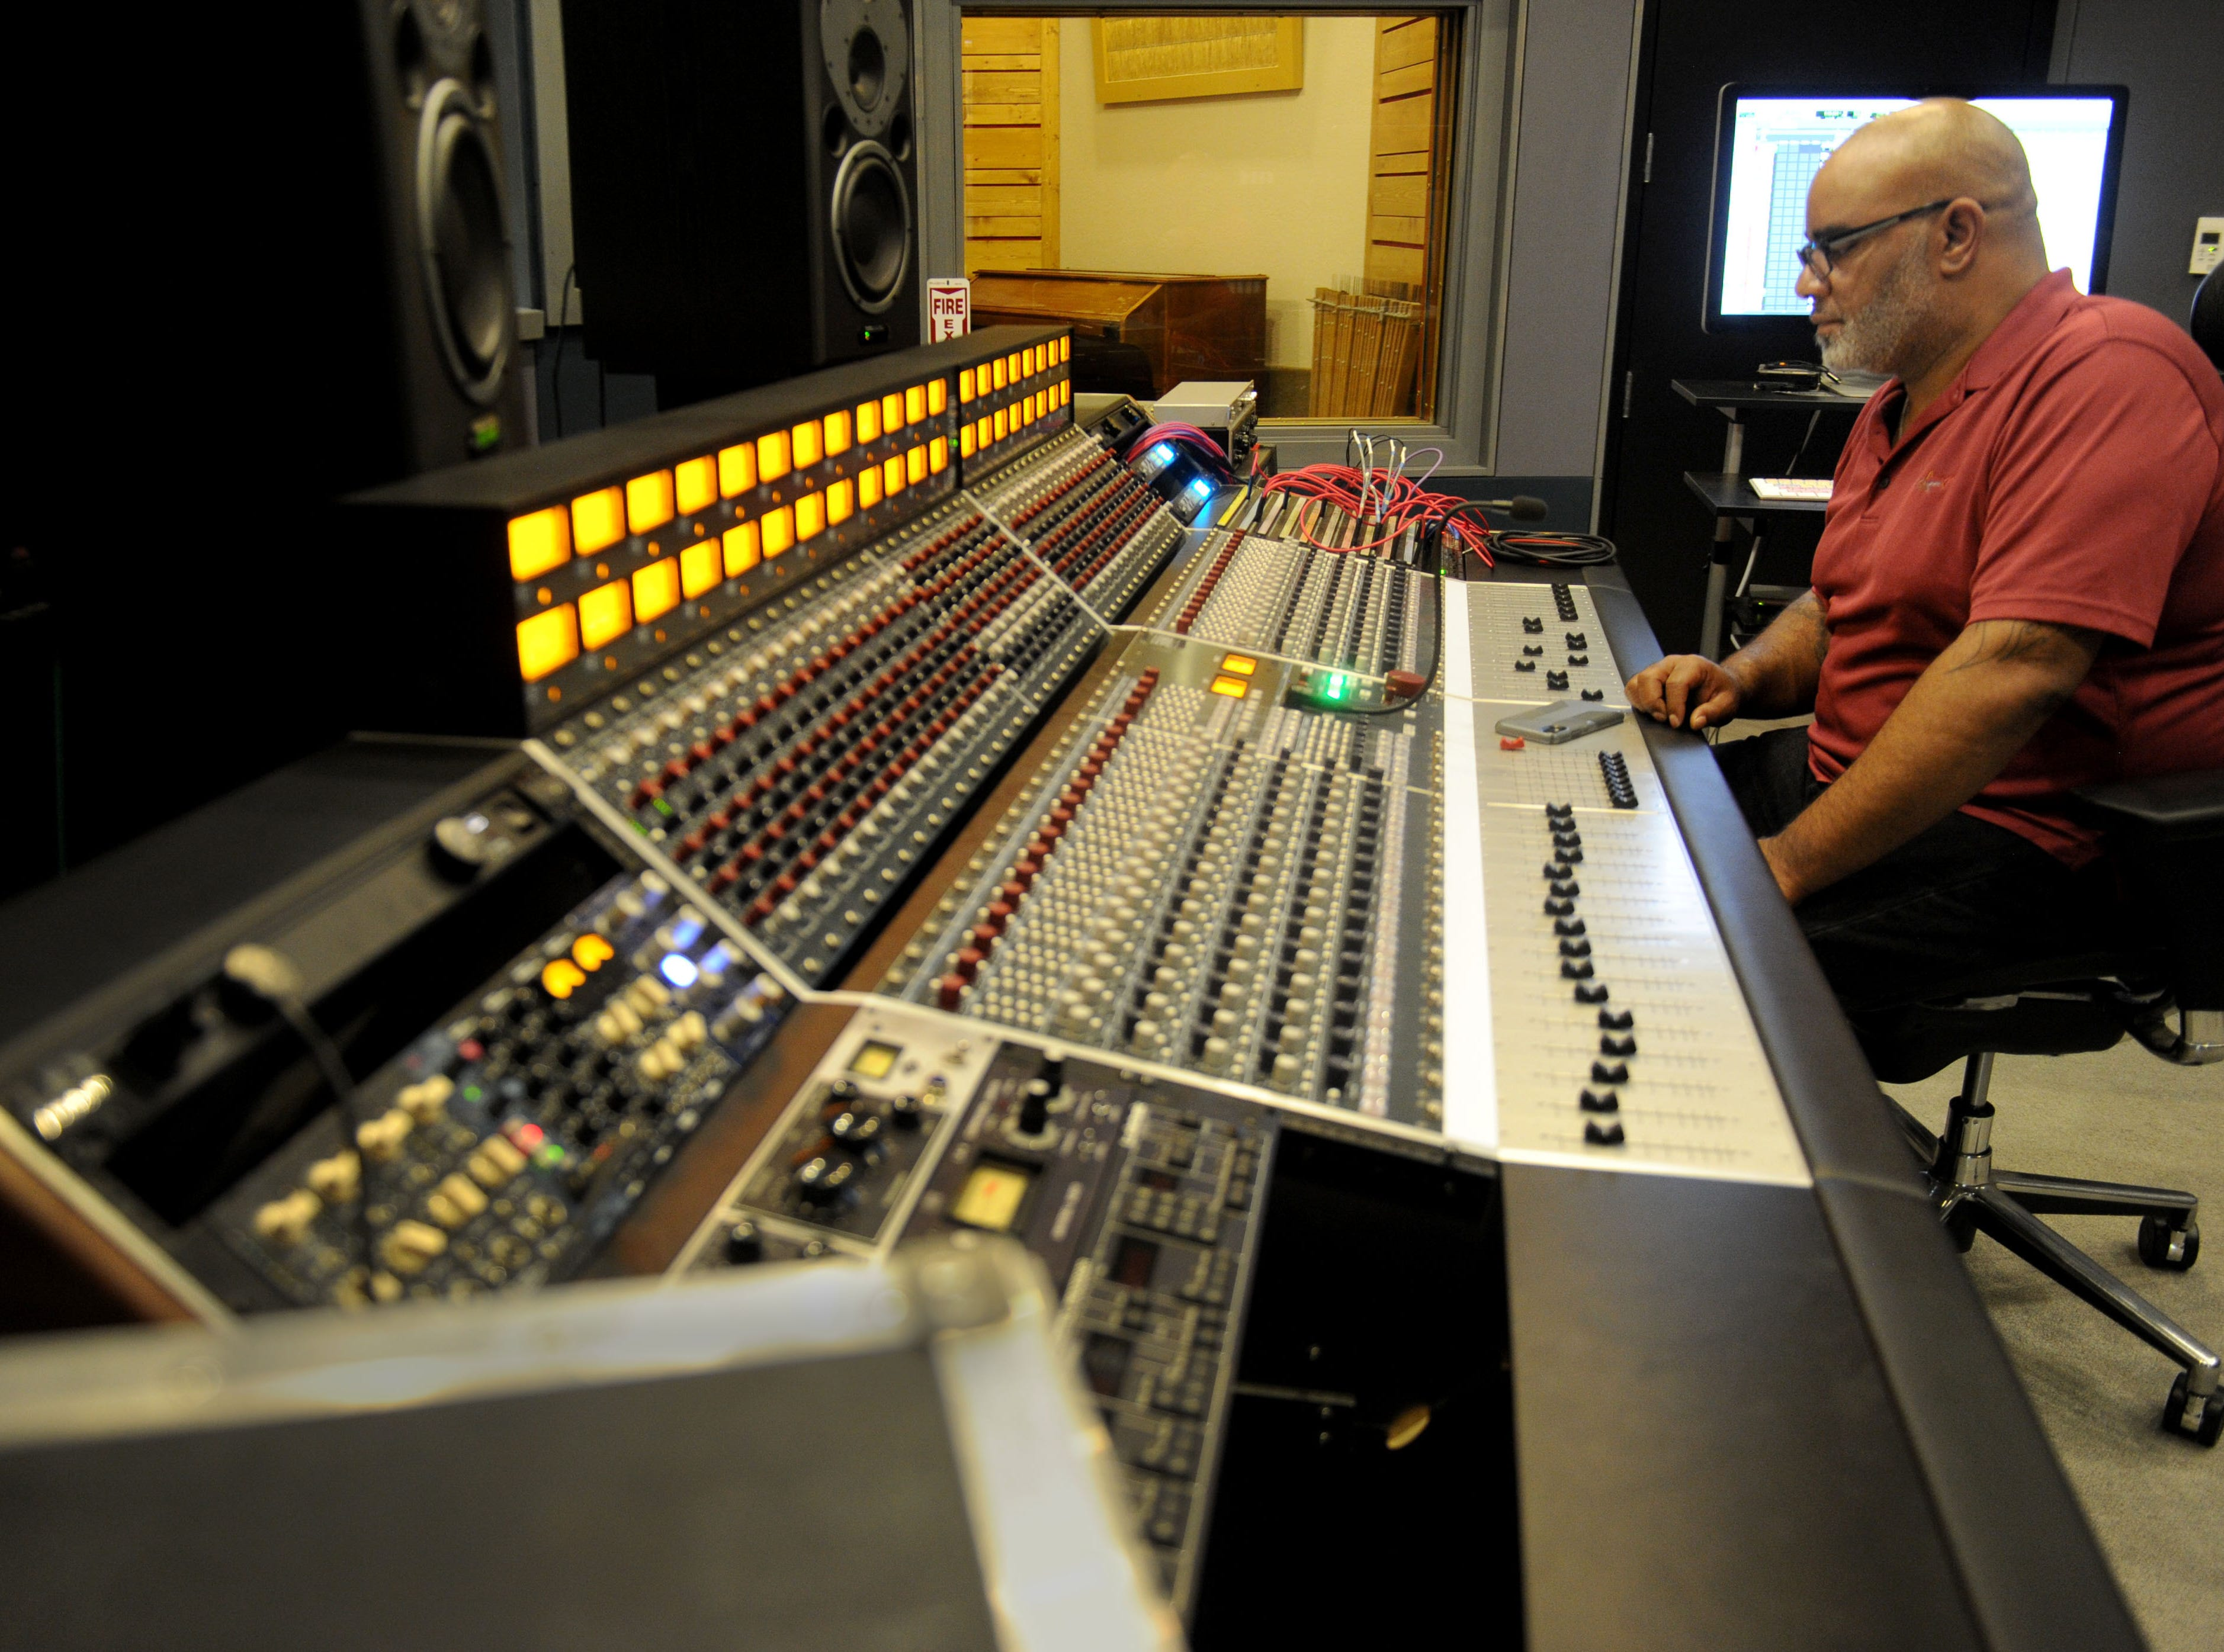 Emanuel Baker, president of Rose Lane Studios in Carpinteria, listens to some music. The studio is trying to carve a niche for itself in the crowded recording studio business with its location in Carpinteria, far away from the hustle and bustle of Los Angeles.